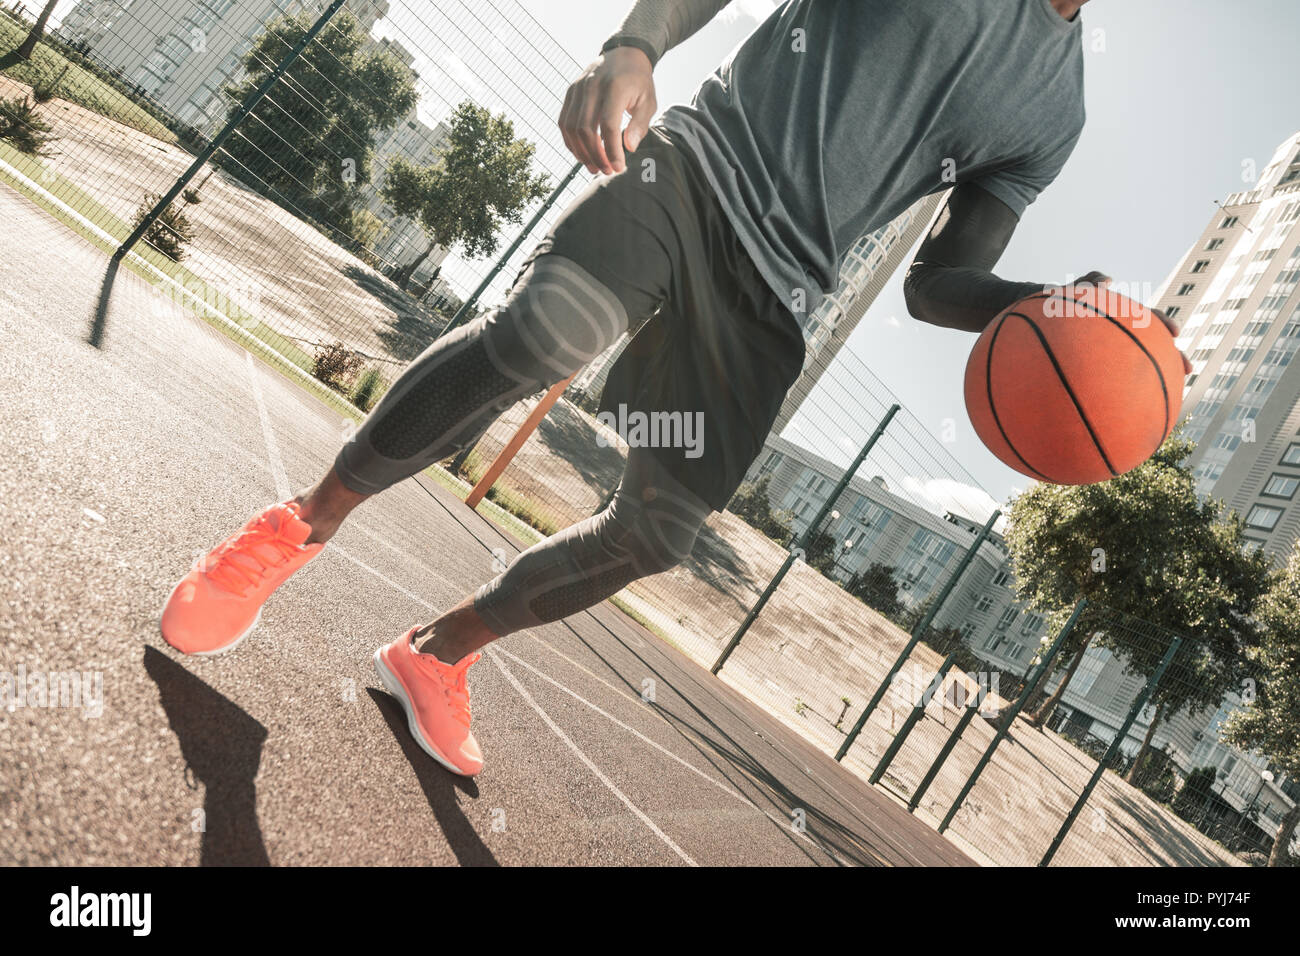 3f60cd1163fa Well built nice man playing basketball alone Stock Photo  223520879 ...